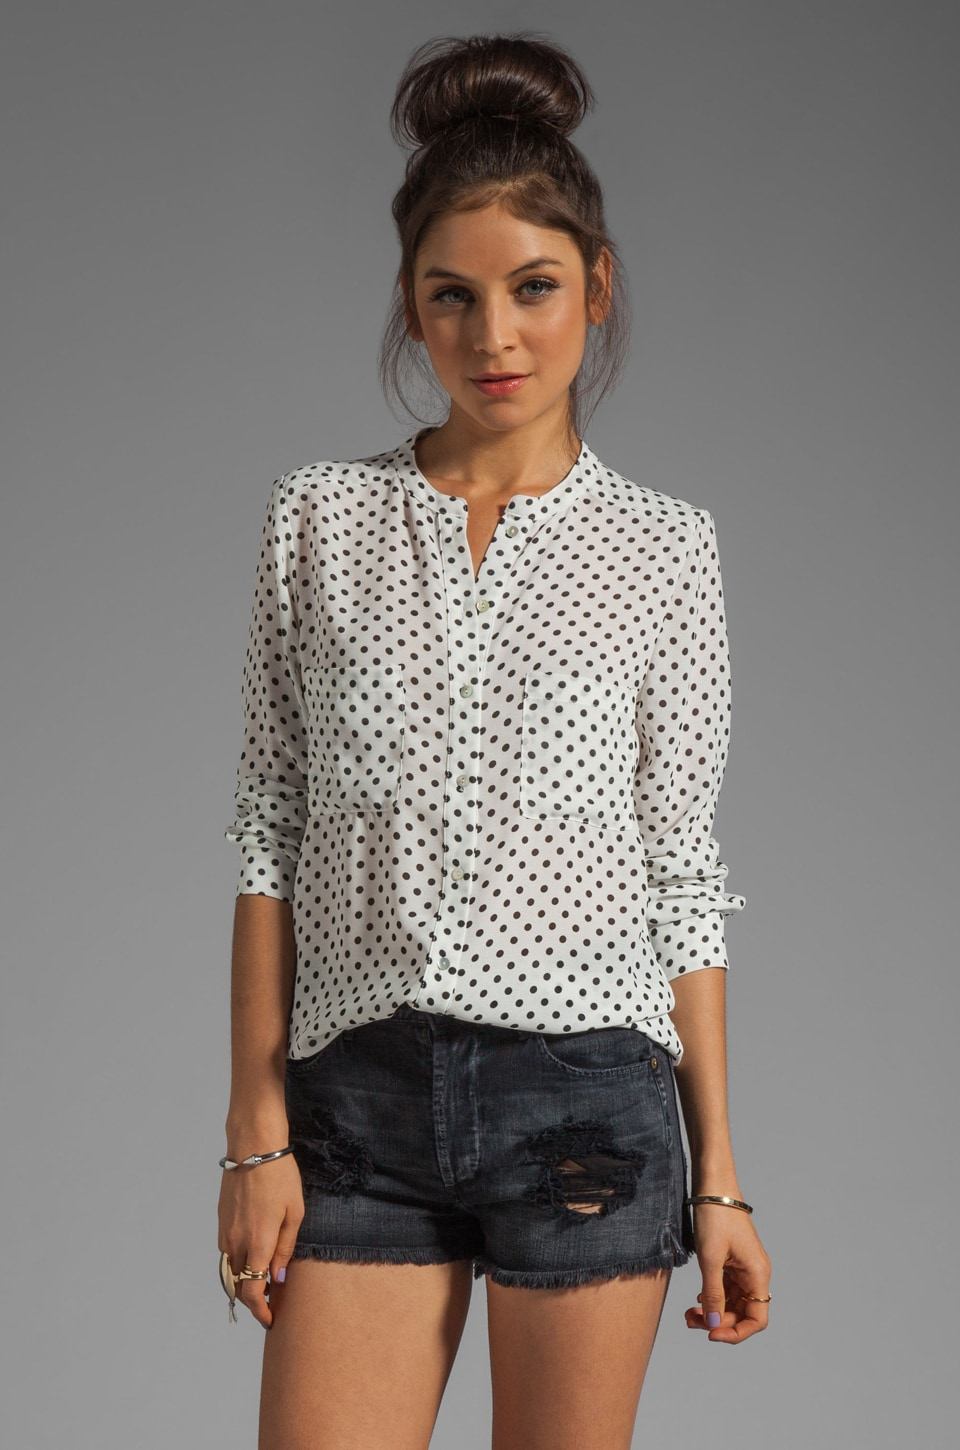 PJK Patterson J. Kincaid Patterson J. Kincaid Laurel Palo Alto Dot Blouse in Black/White